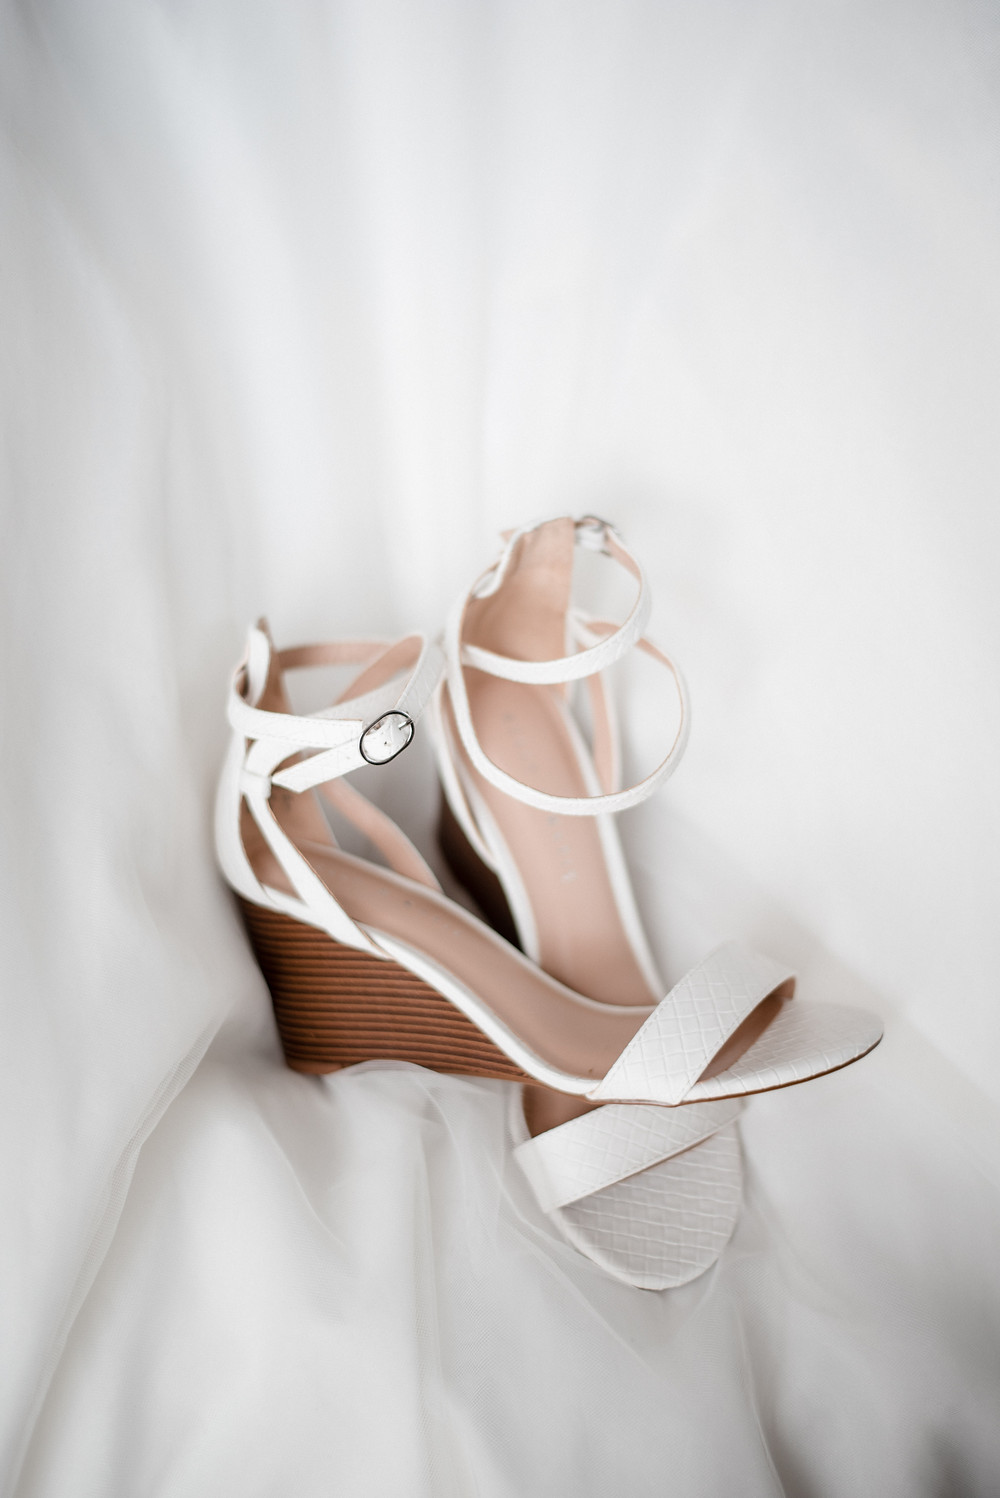 wedding shoes, heels, white, wedding photographer